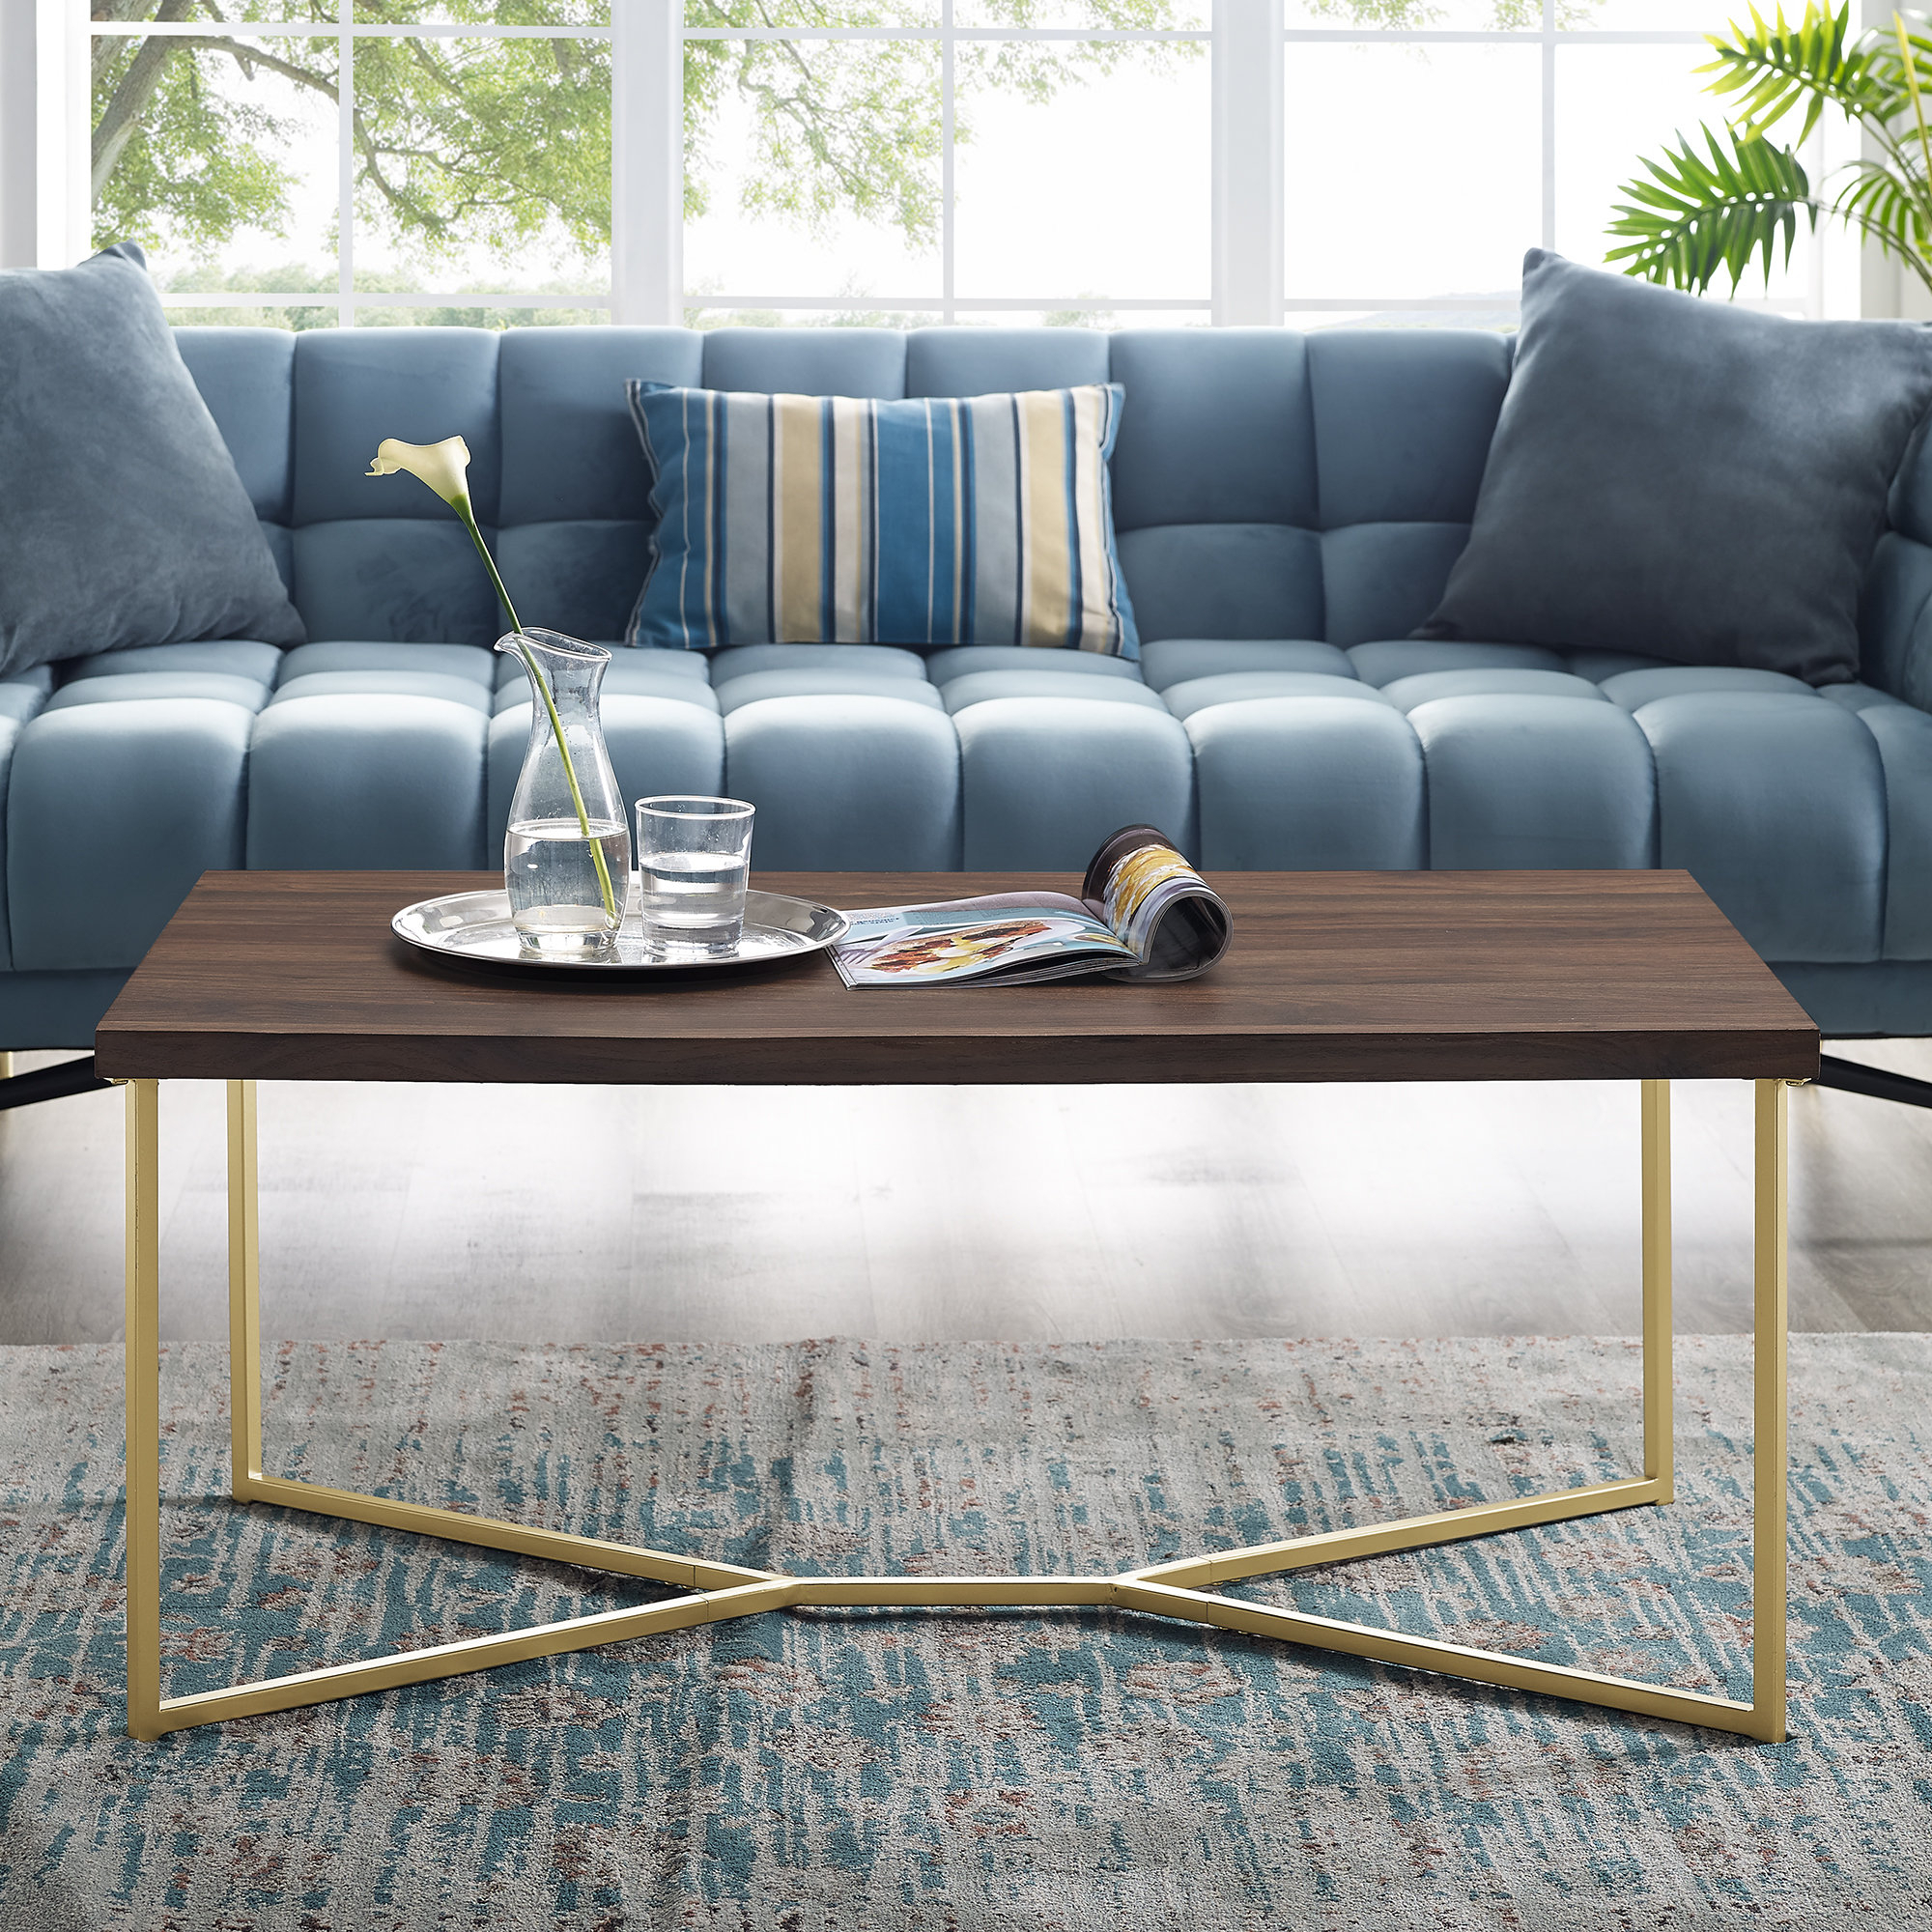 Wayfair With Regard To Batik Coffee Tables (View 7 of 20)